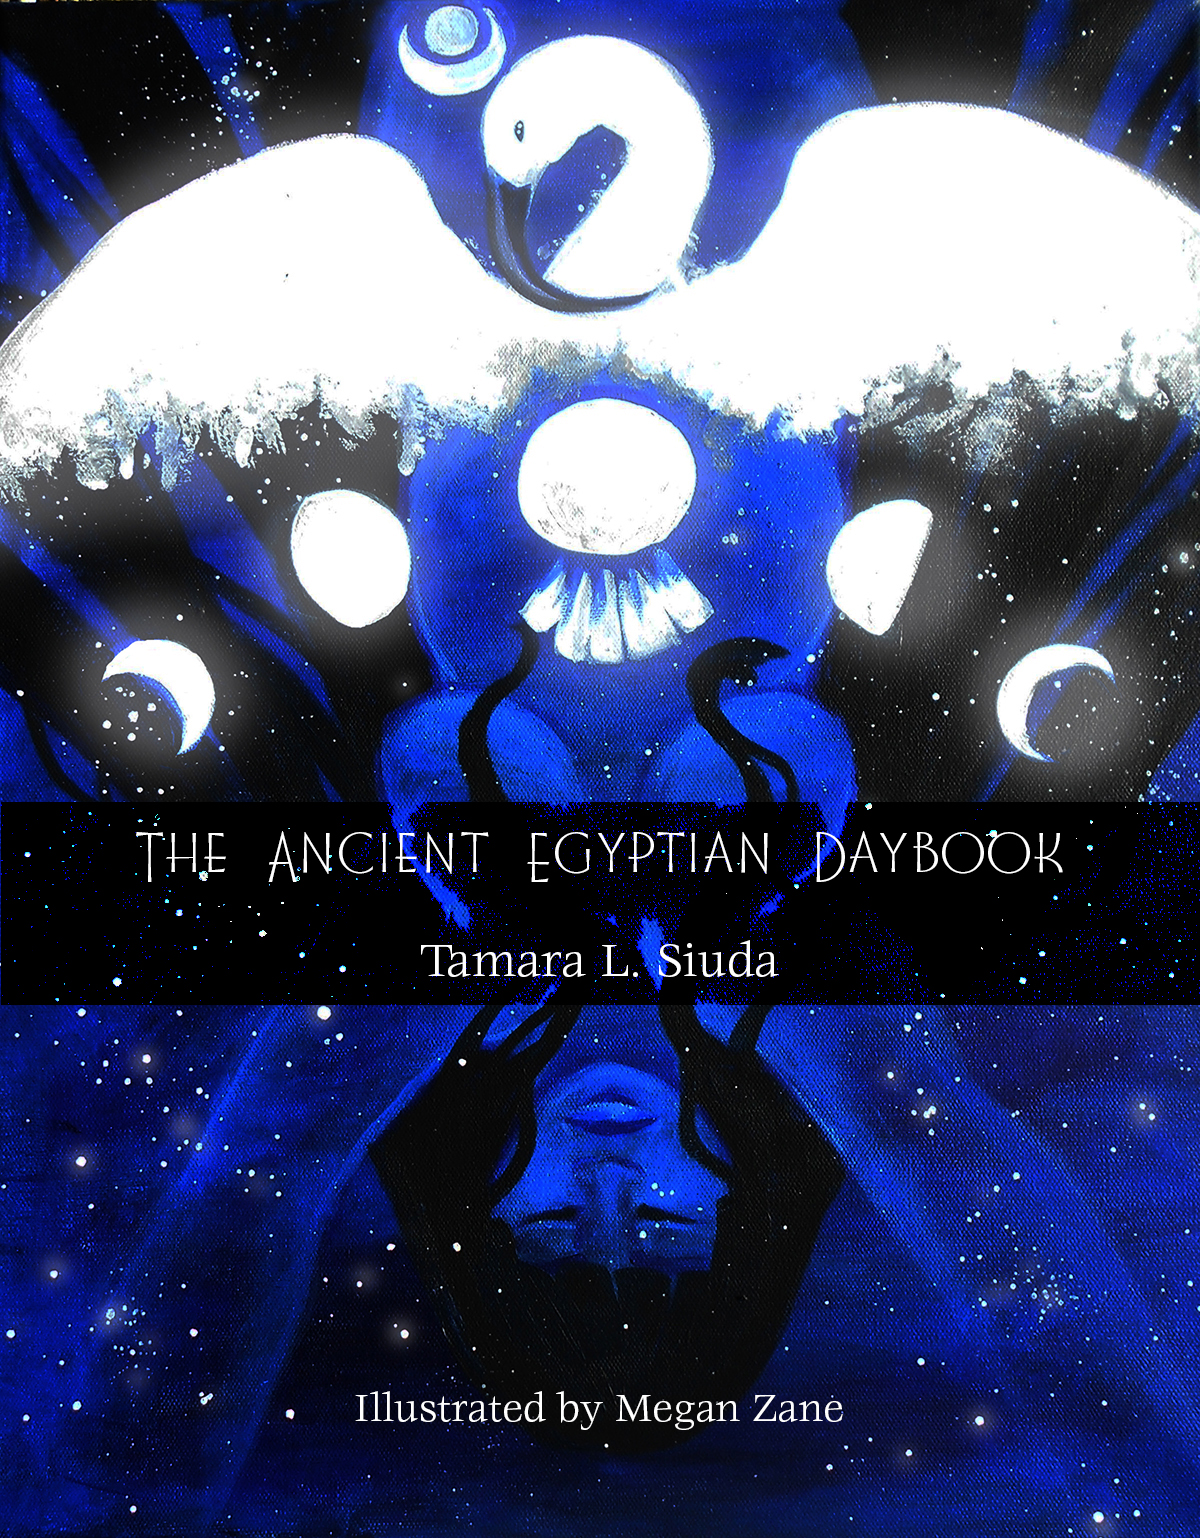 The Ancient Egyptian Daybook (Paperback) by Tamara L. Siuda